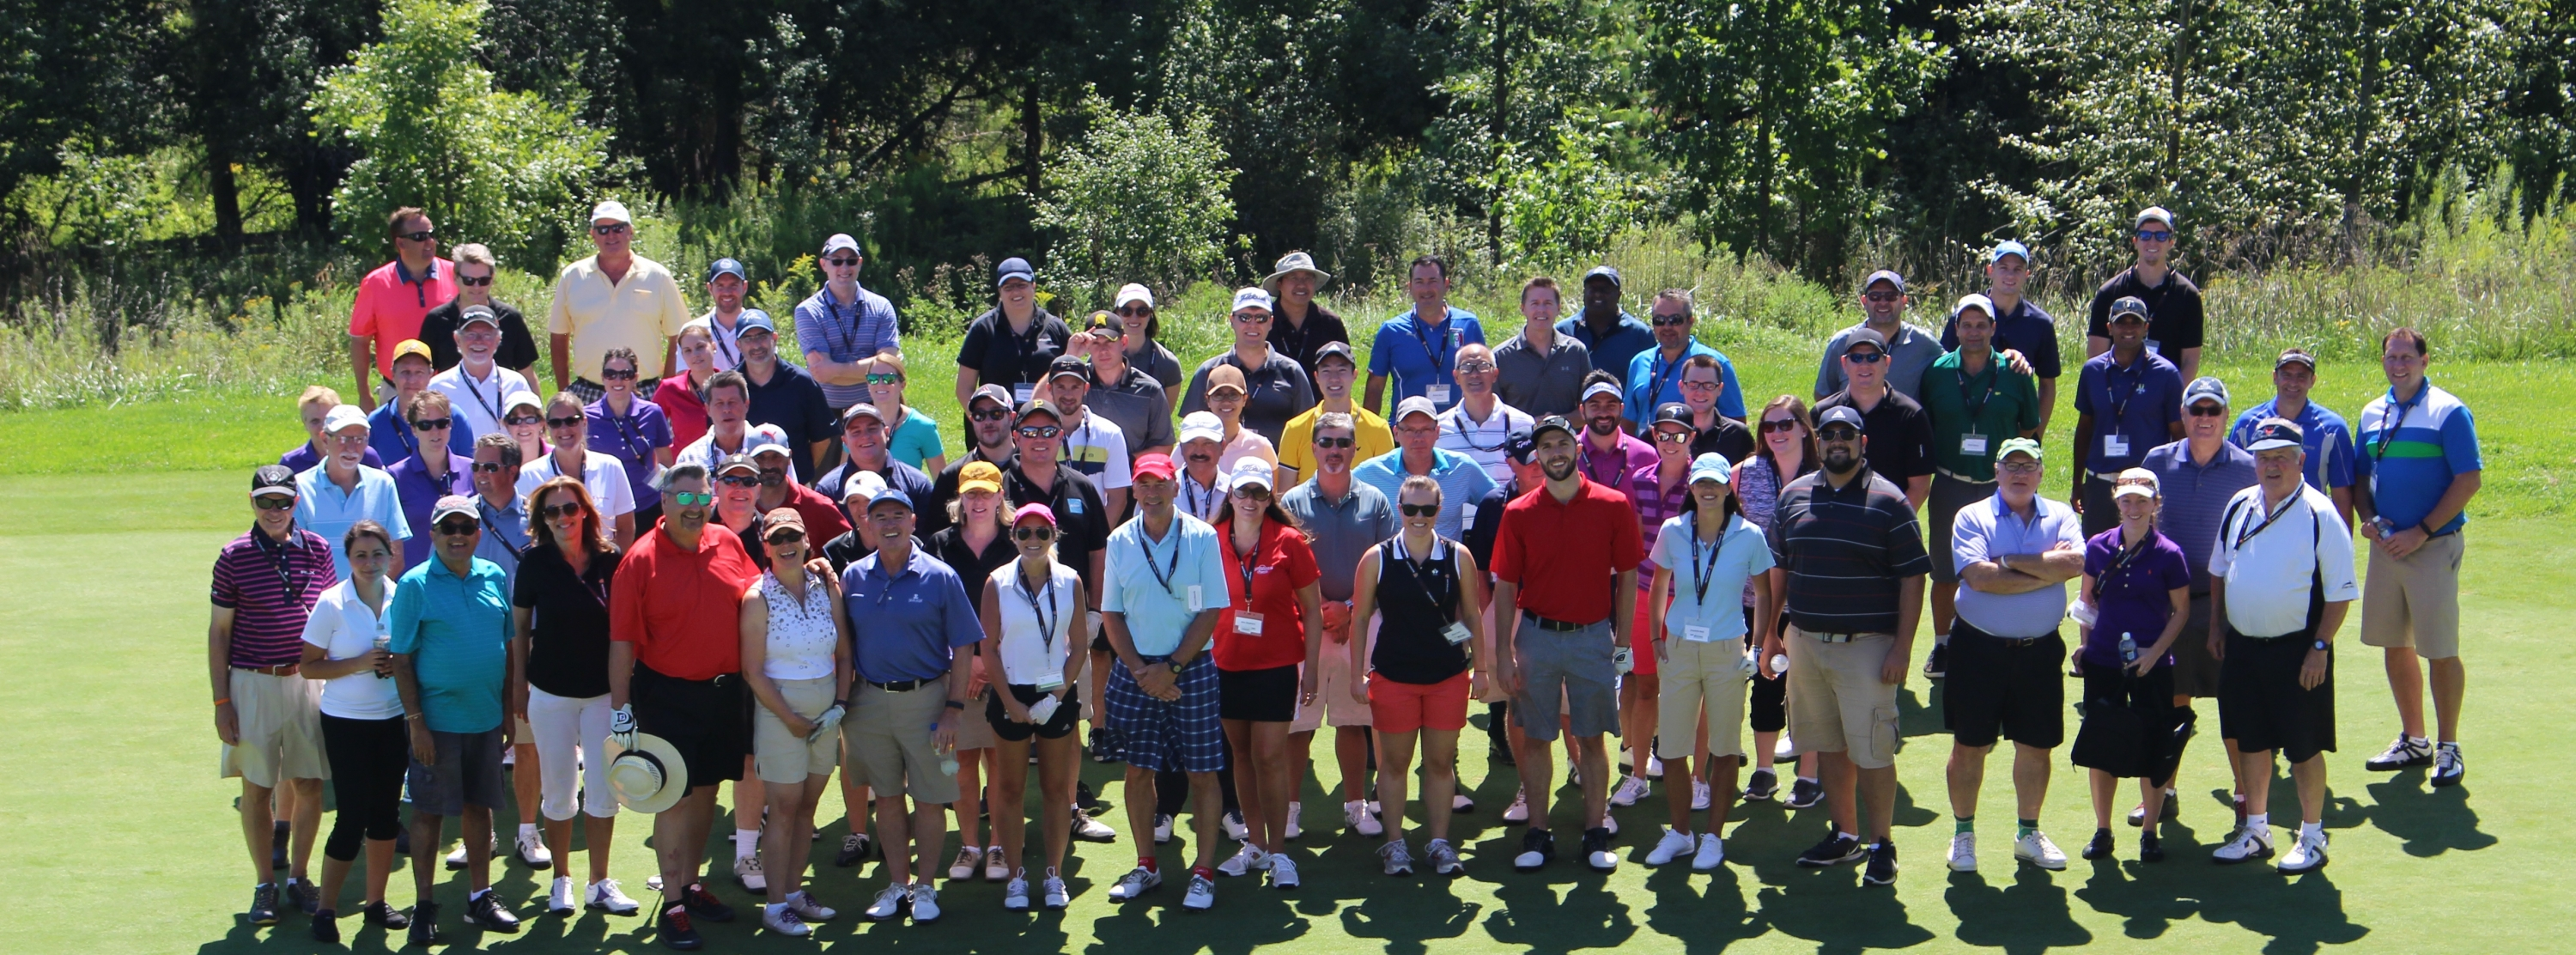 Golf participants on the course